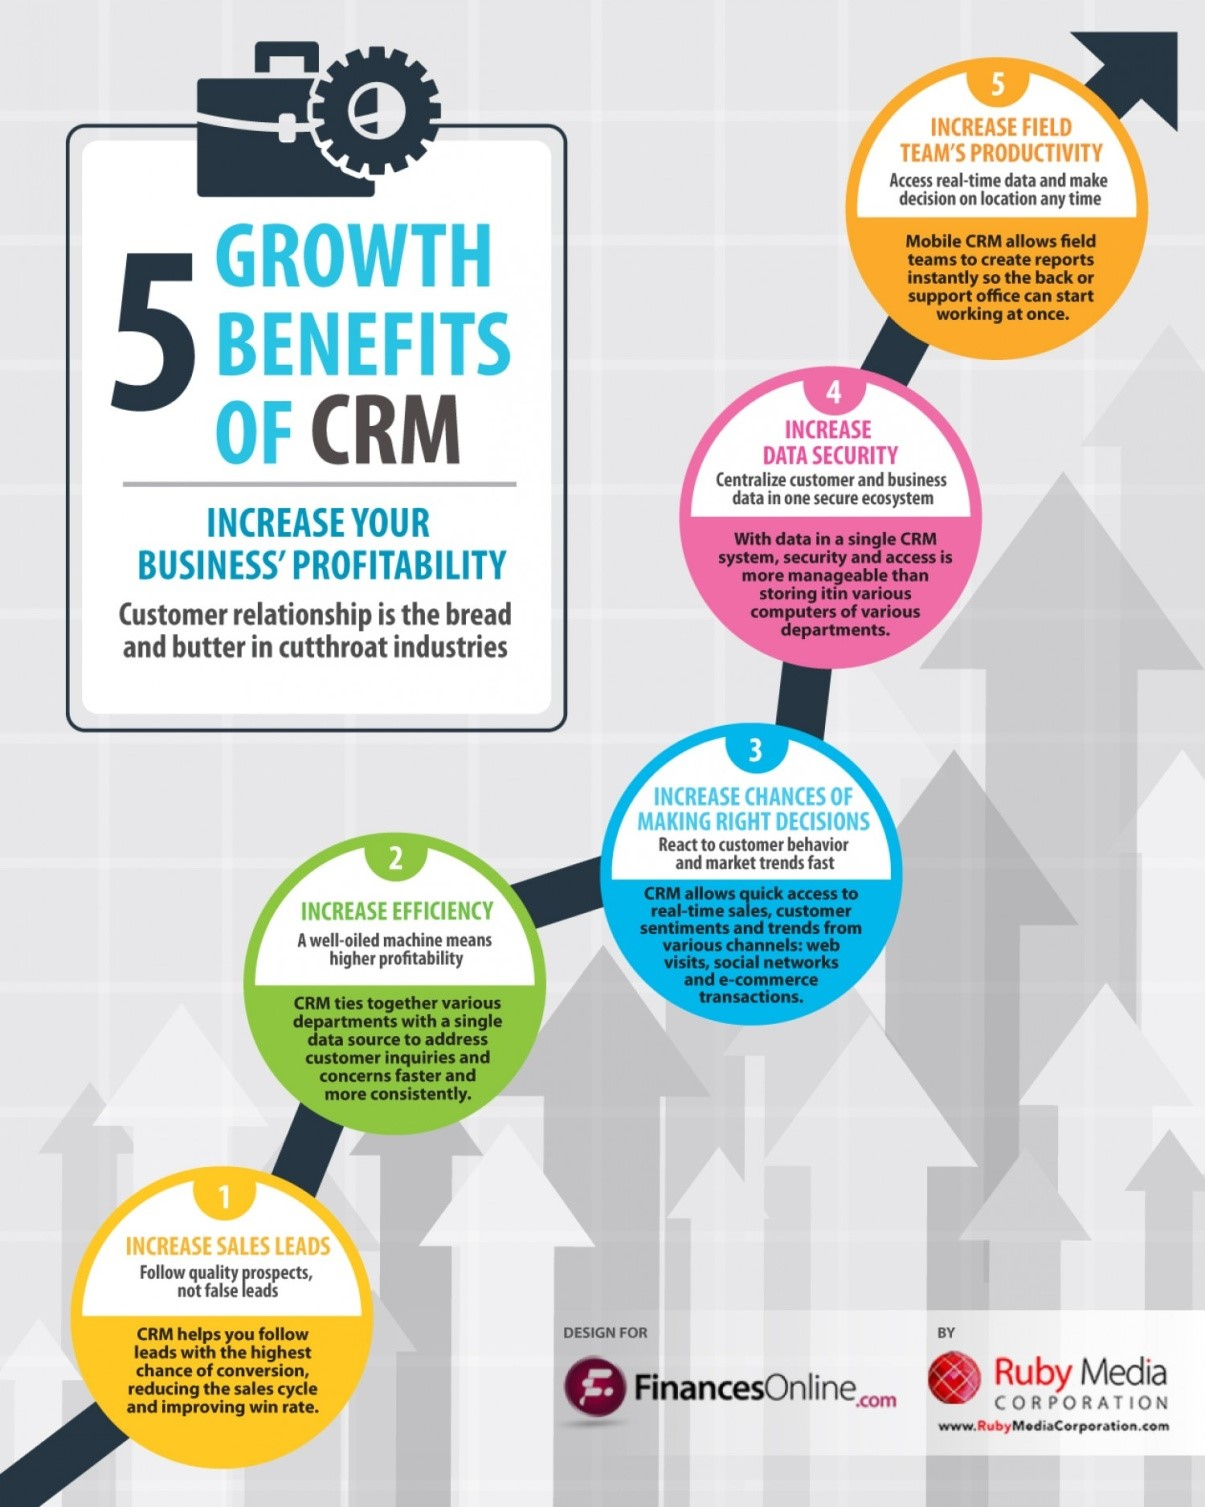 5 Growth Benefits of CRM